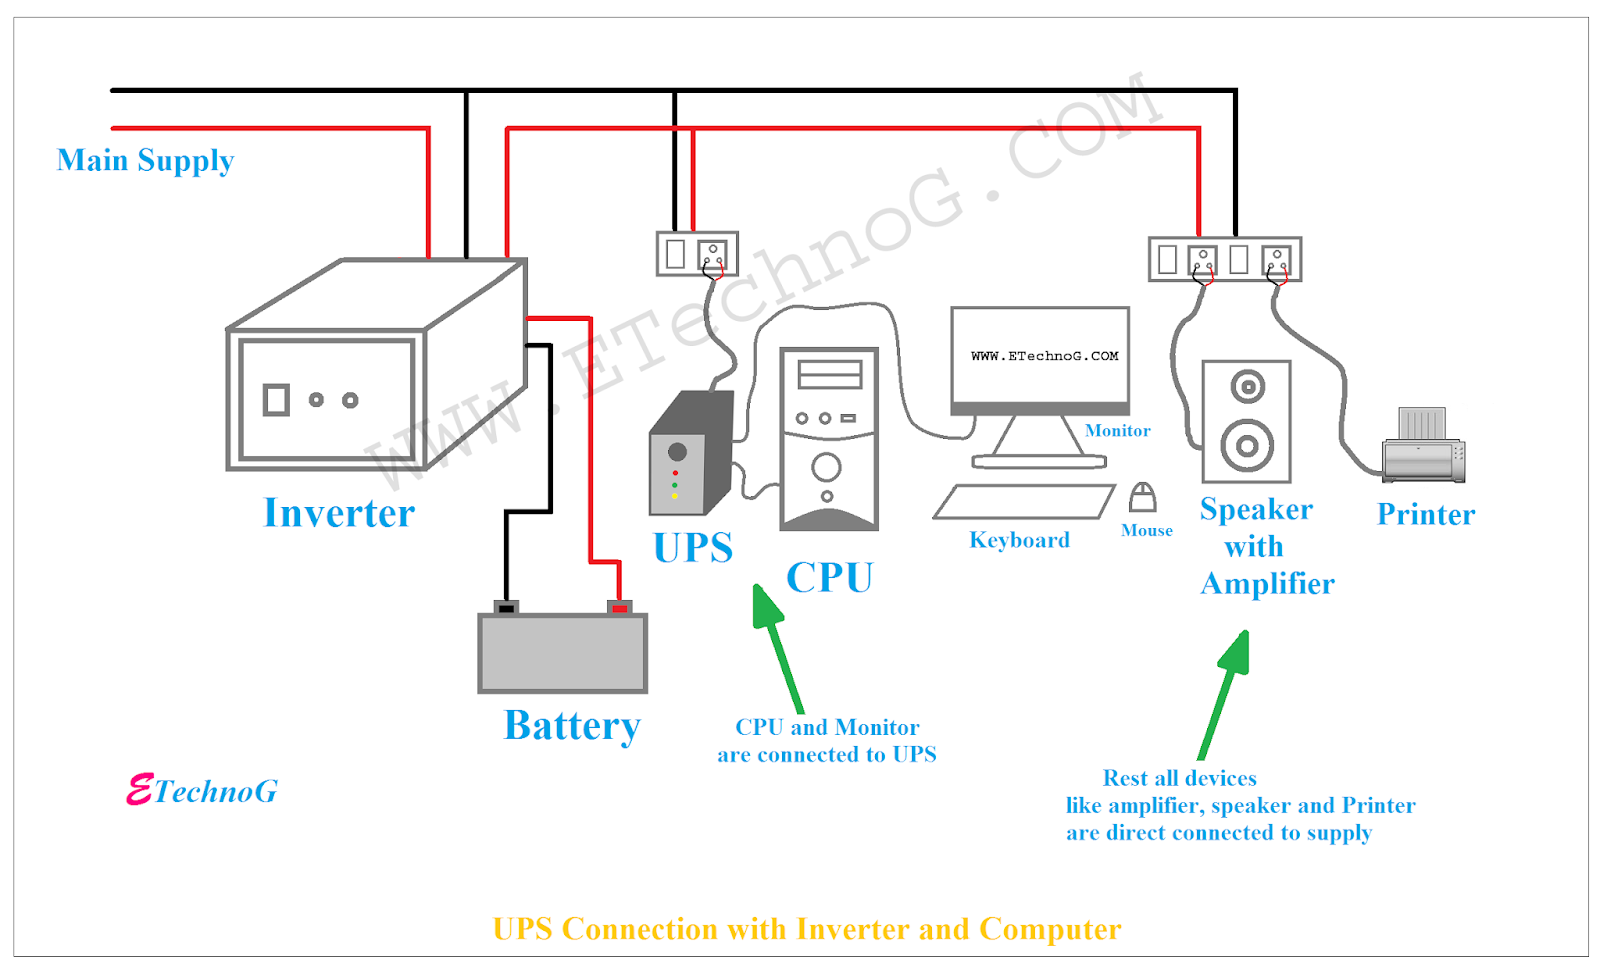 proper ups connection with loads inverter computer at home etechnogups connection ups connection diagram [ 1600 x 967 Pixel ]